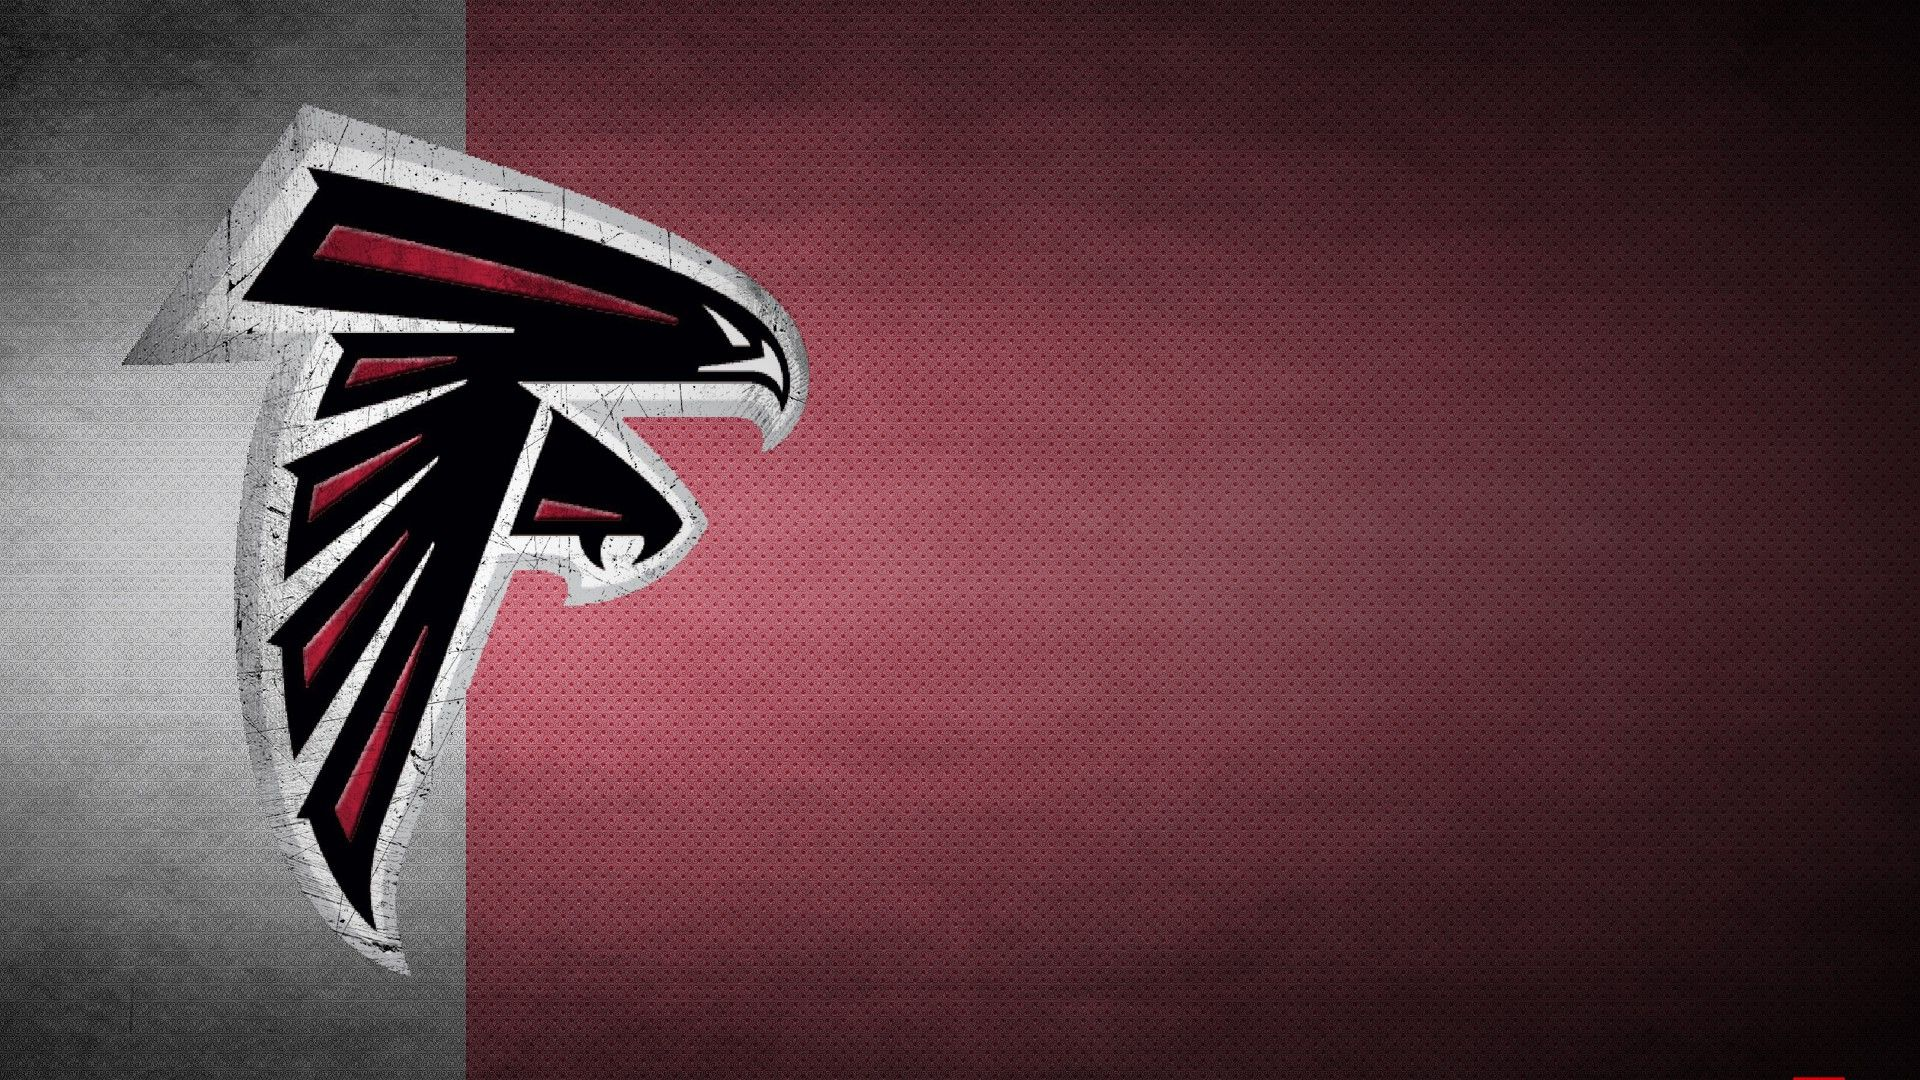 Hd Atlanta Falcons Backgrounds Atlanta Falcons Wallpaper Kylo Ren Wallpaper